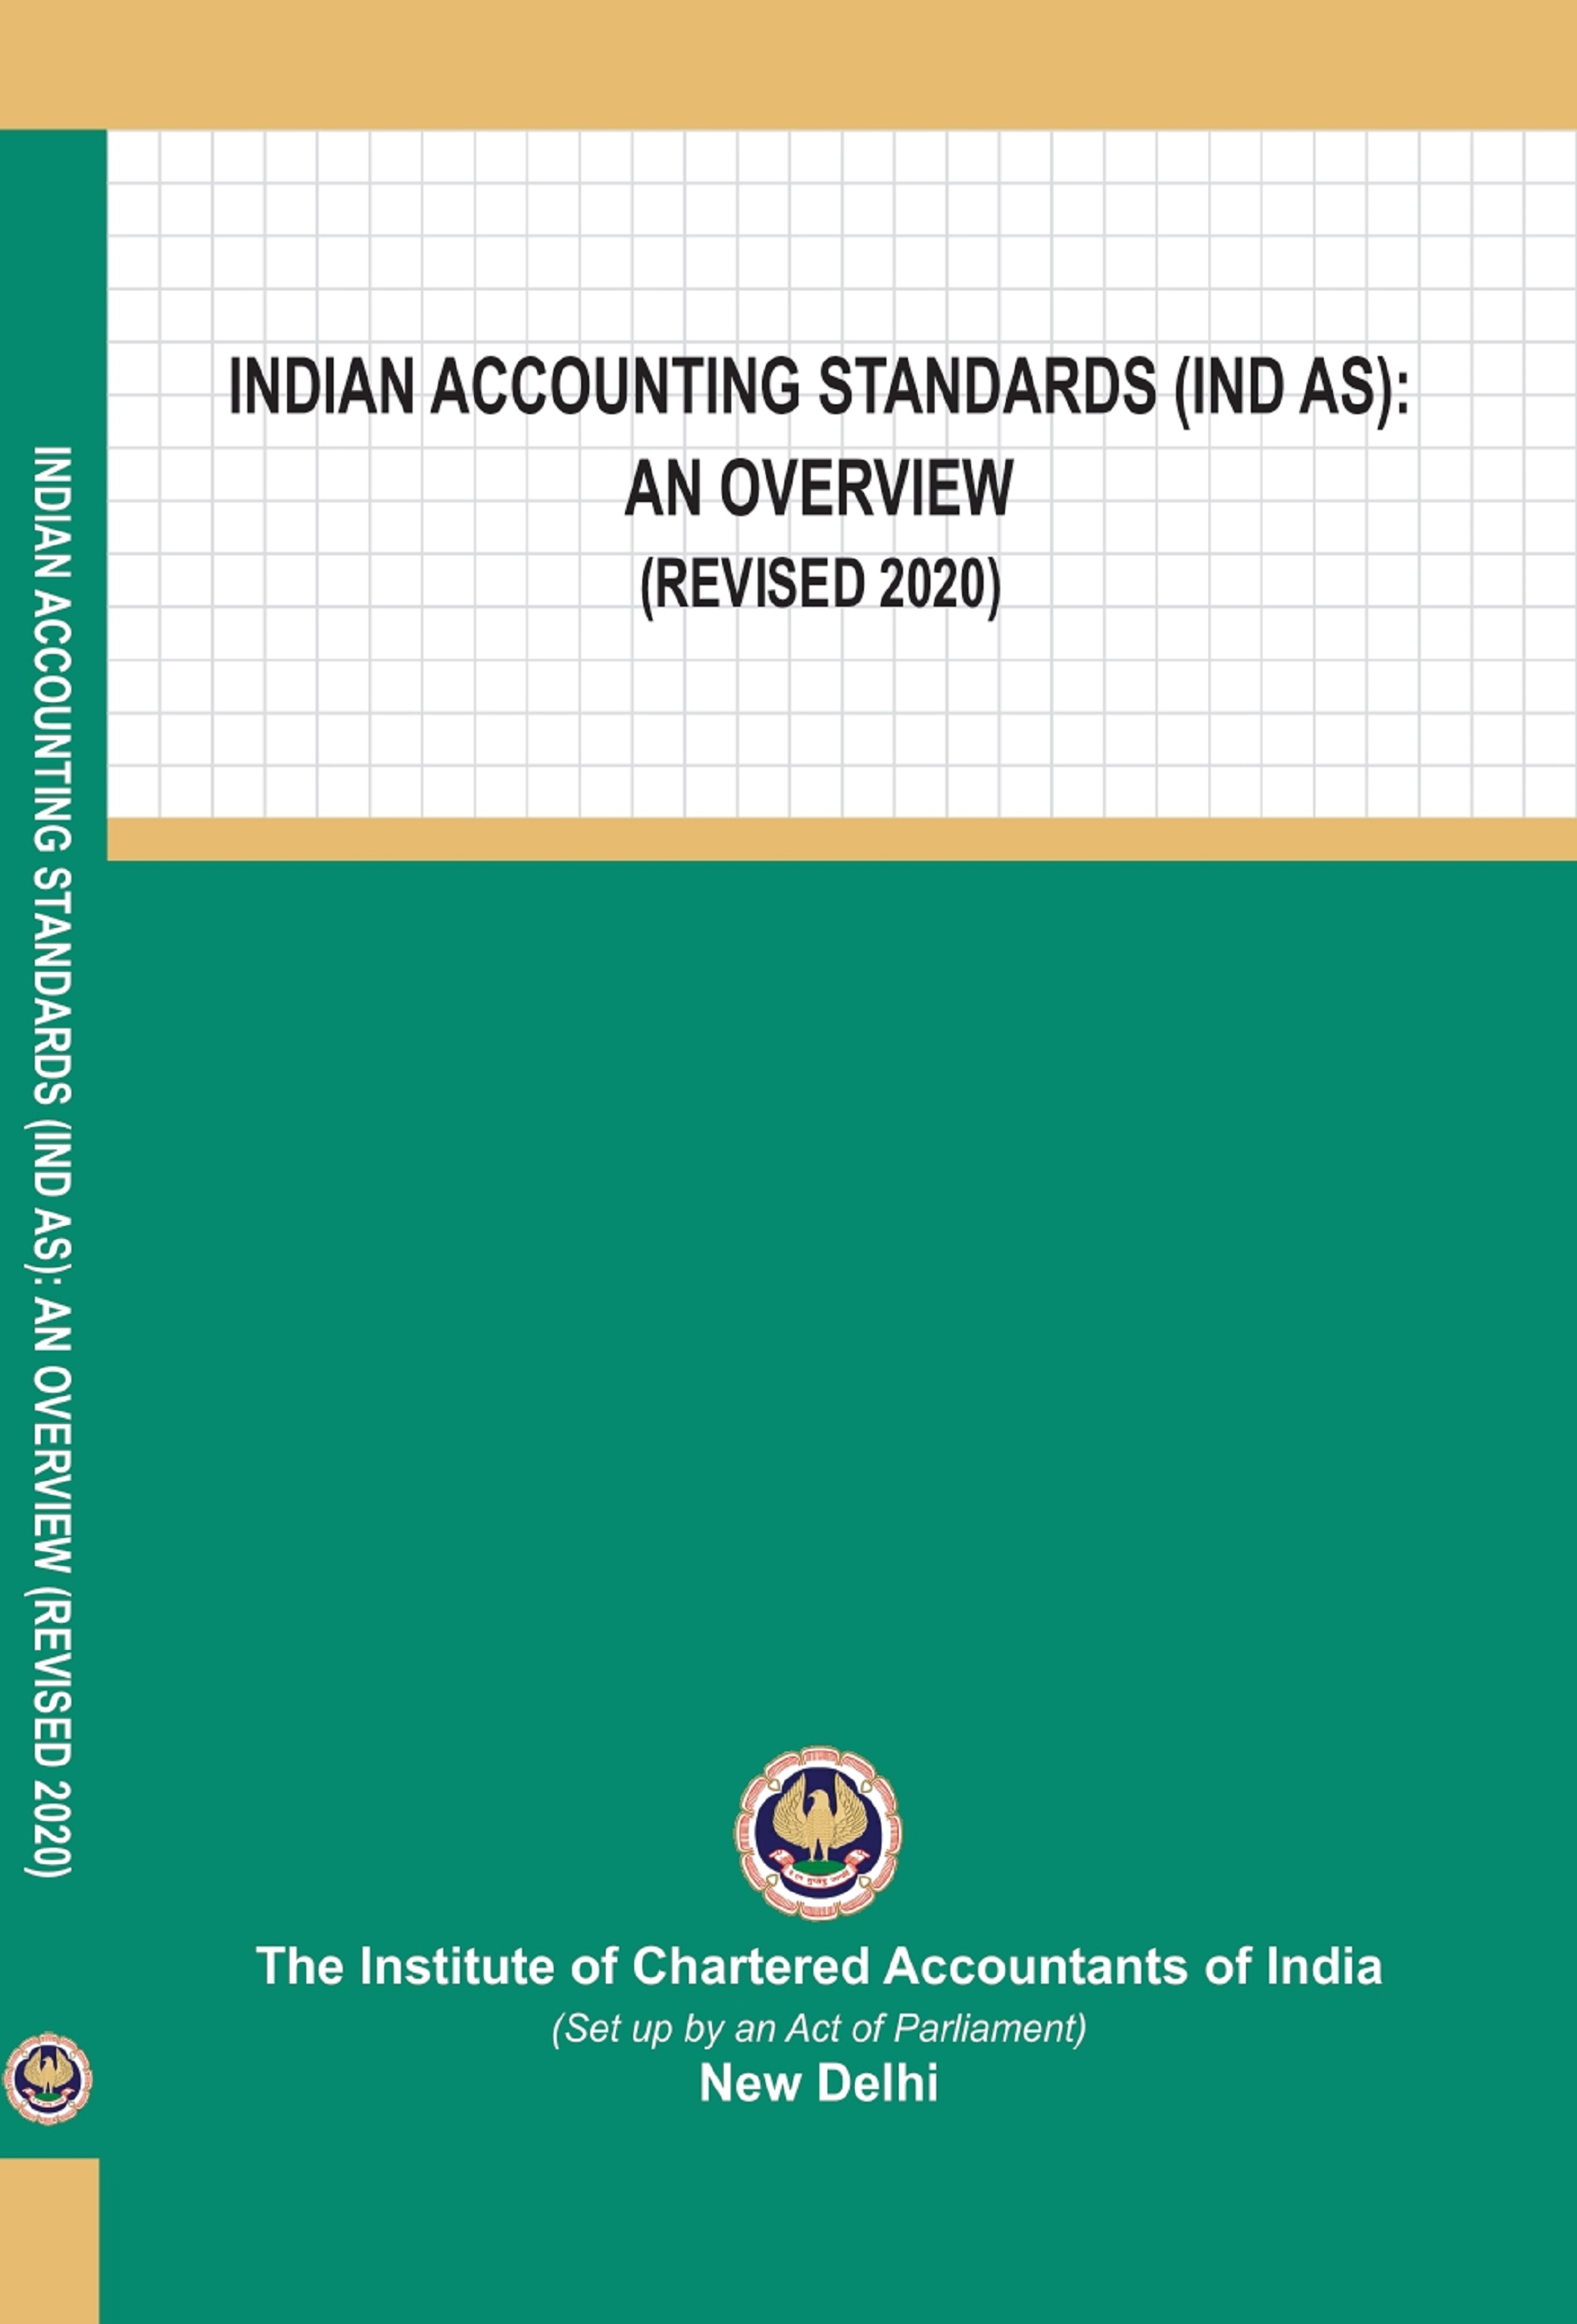 Indian Accounting Standards (Ind AS): An Overview (Revised 2020)